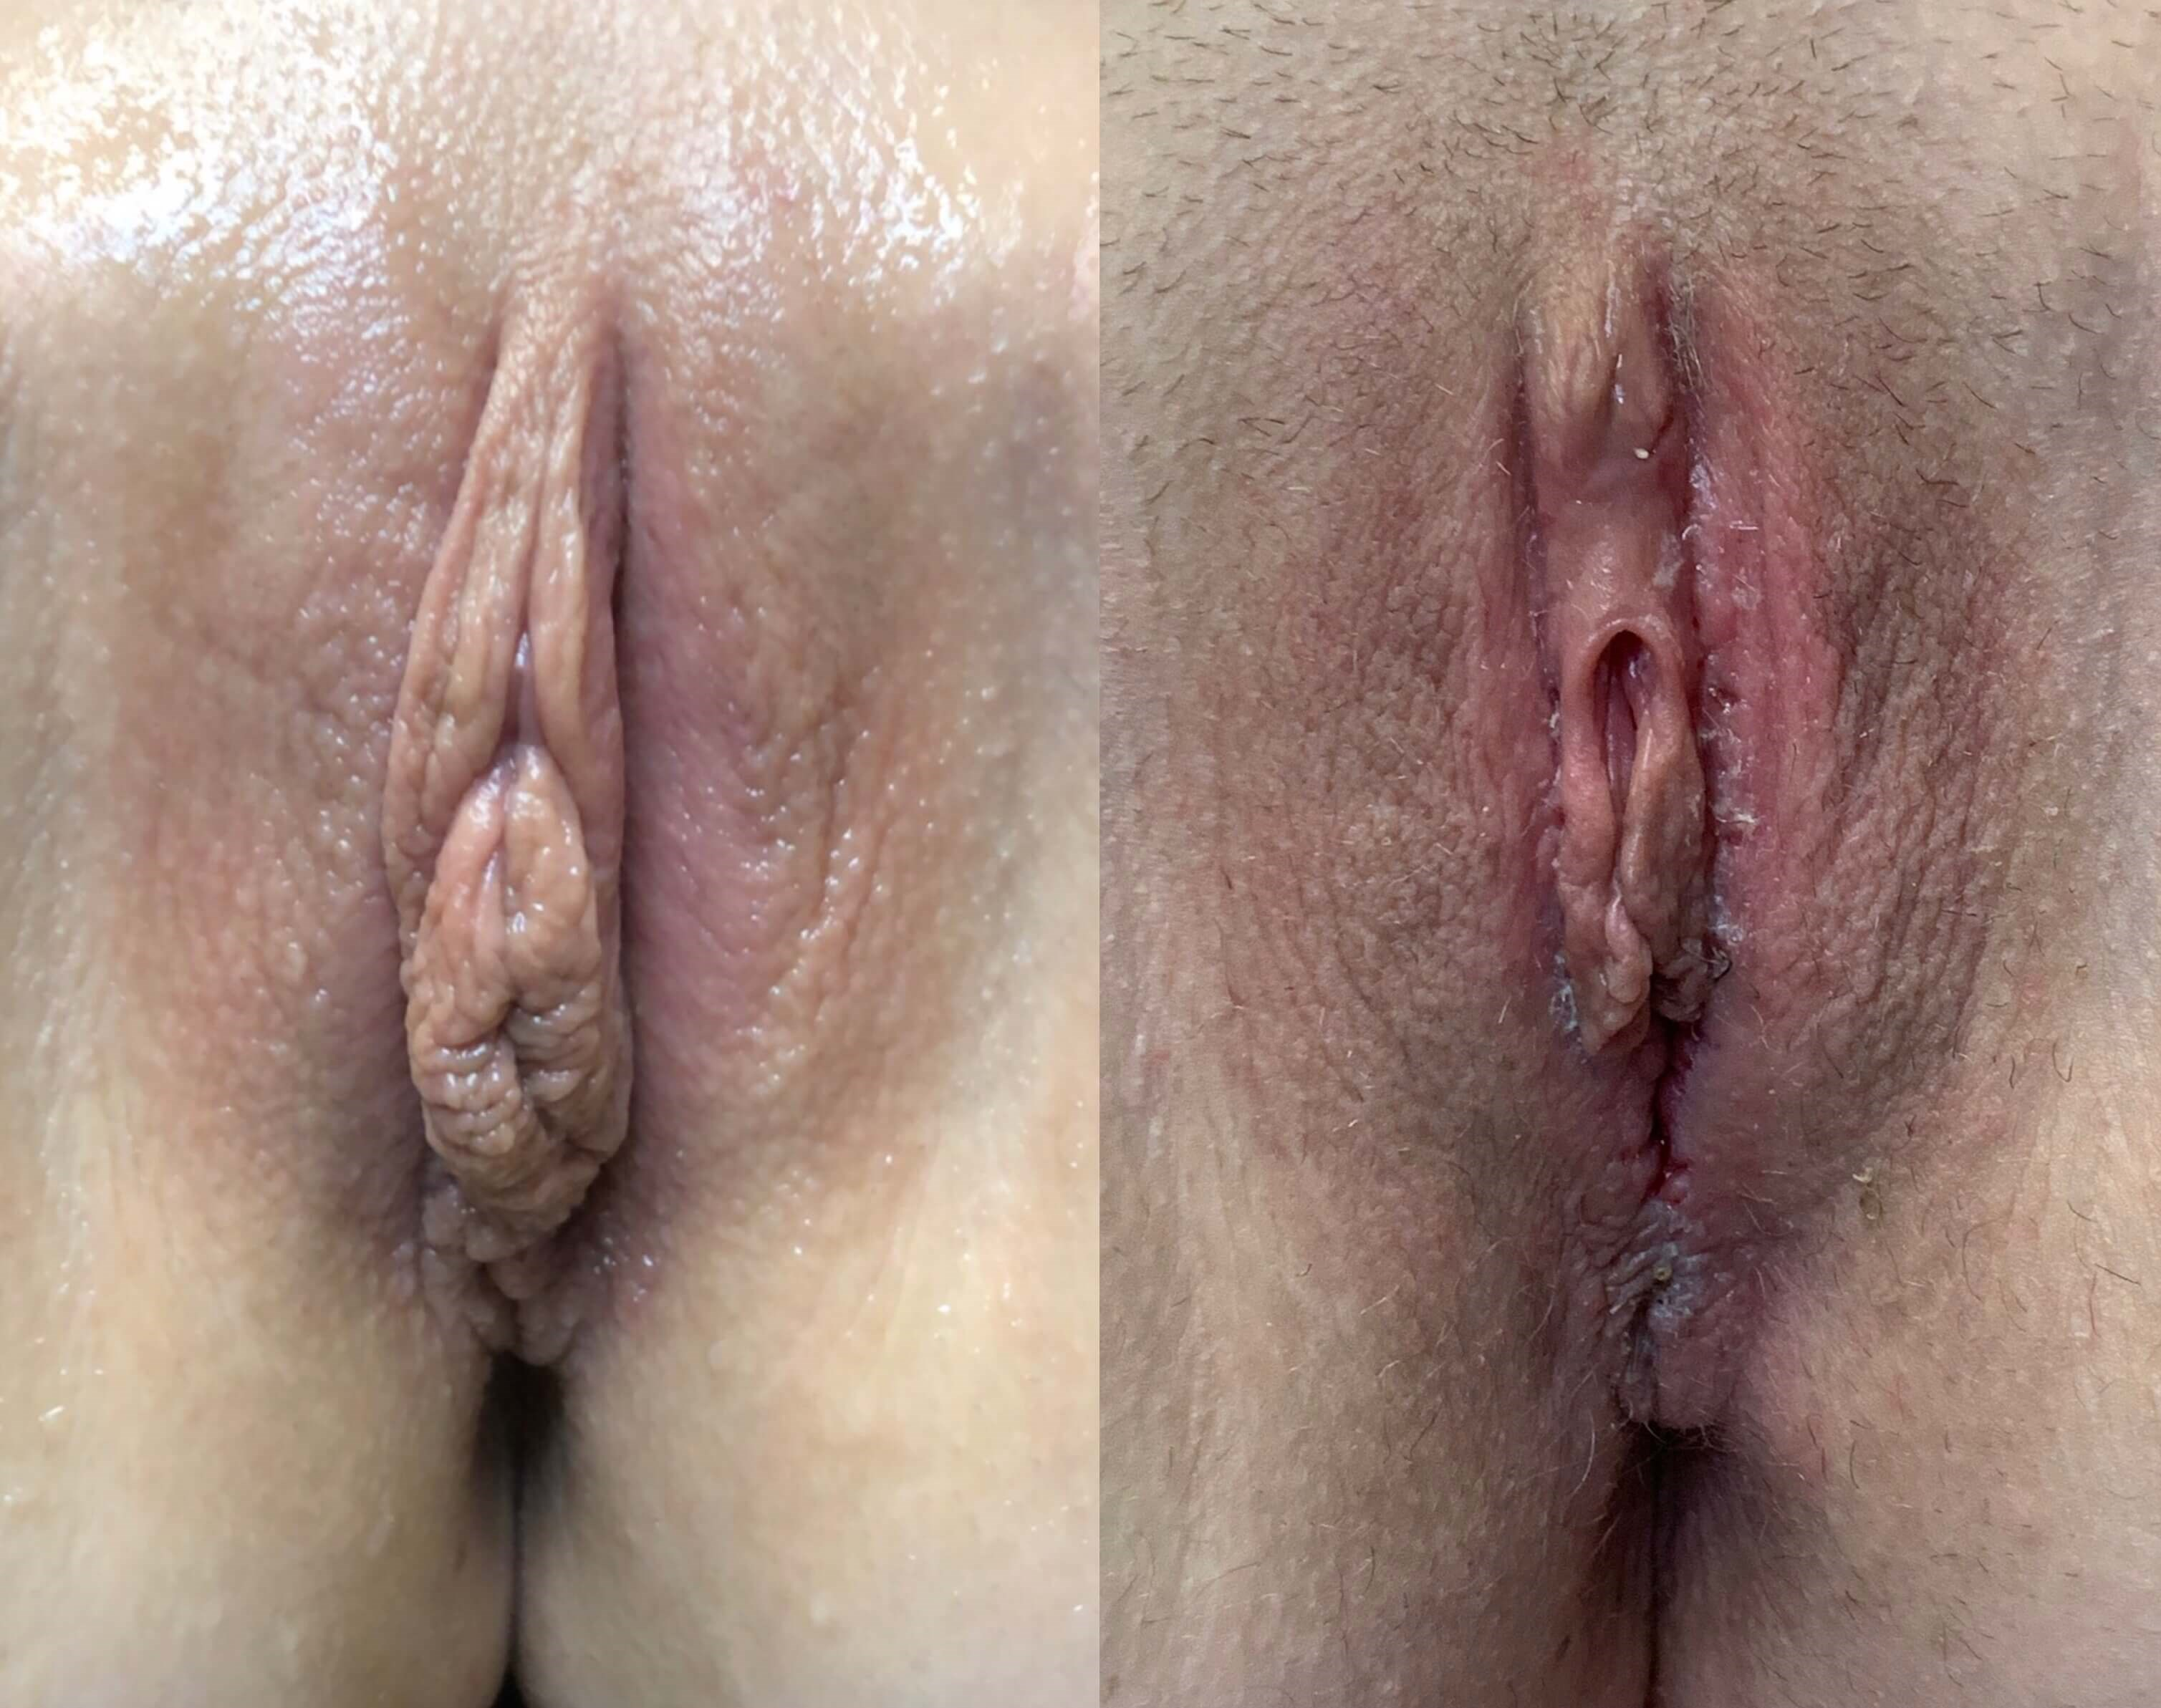 Labiaplasty with Clitoral Hood Reduction Before - Labiaplasty